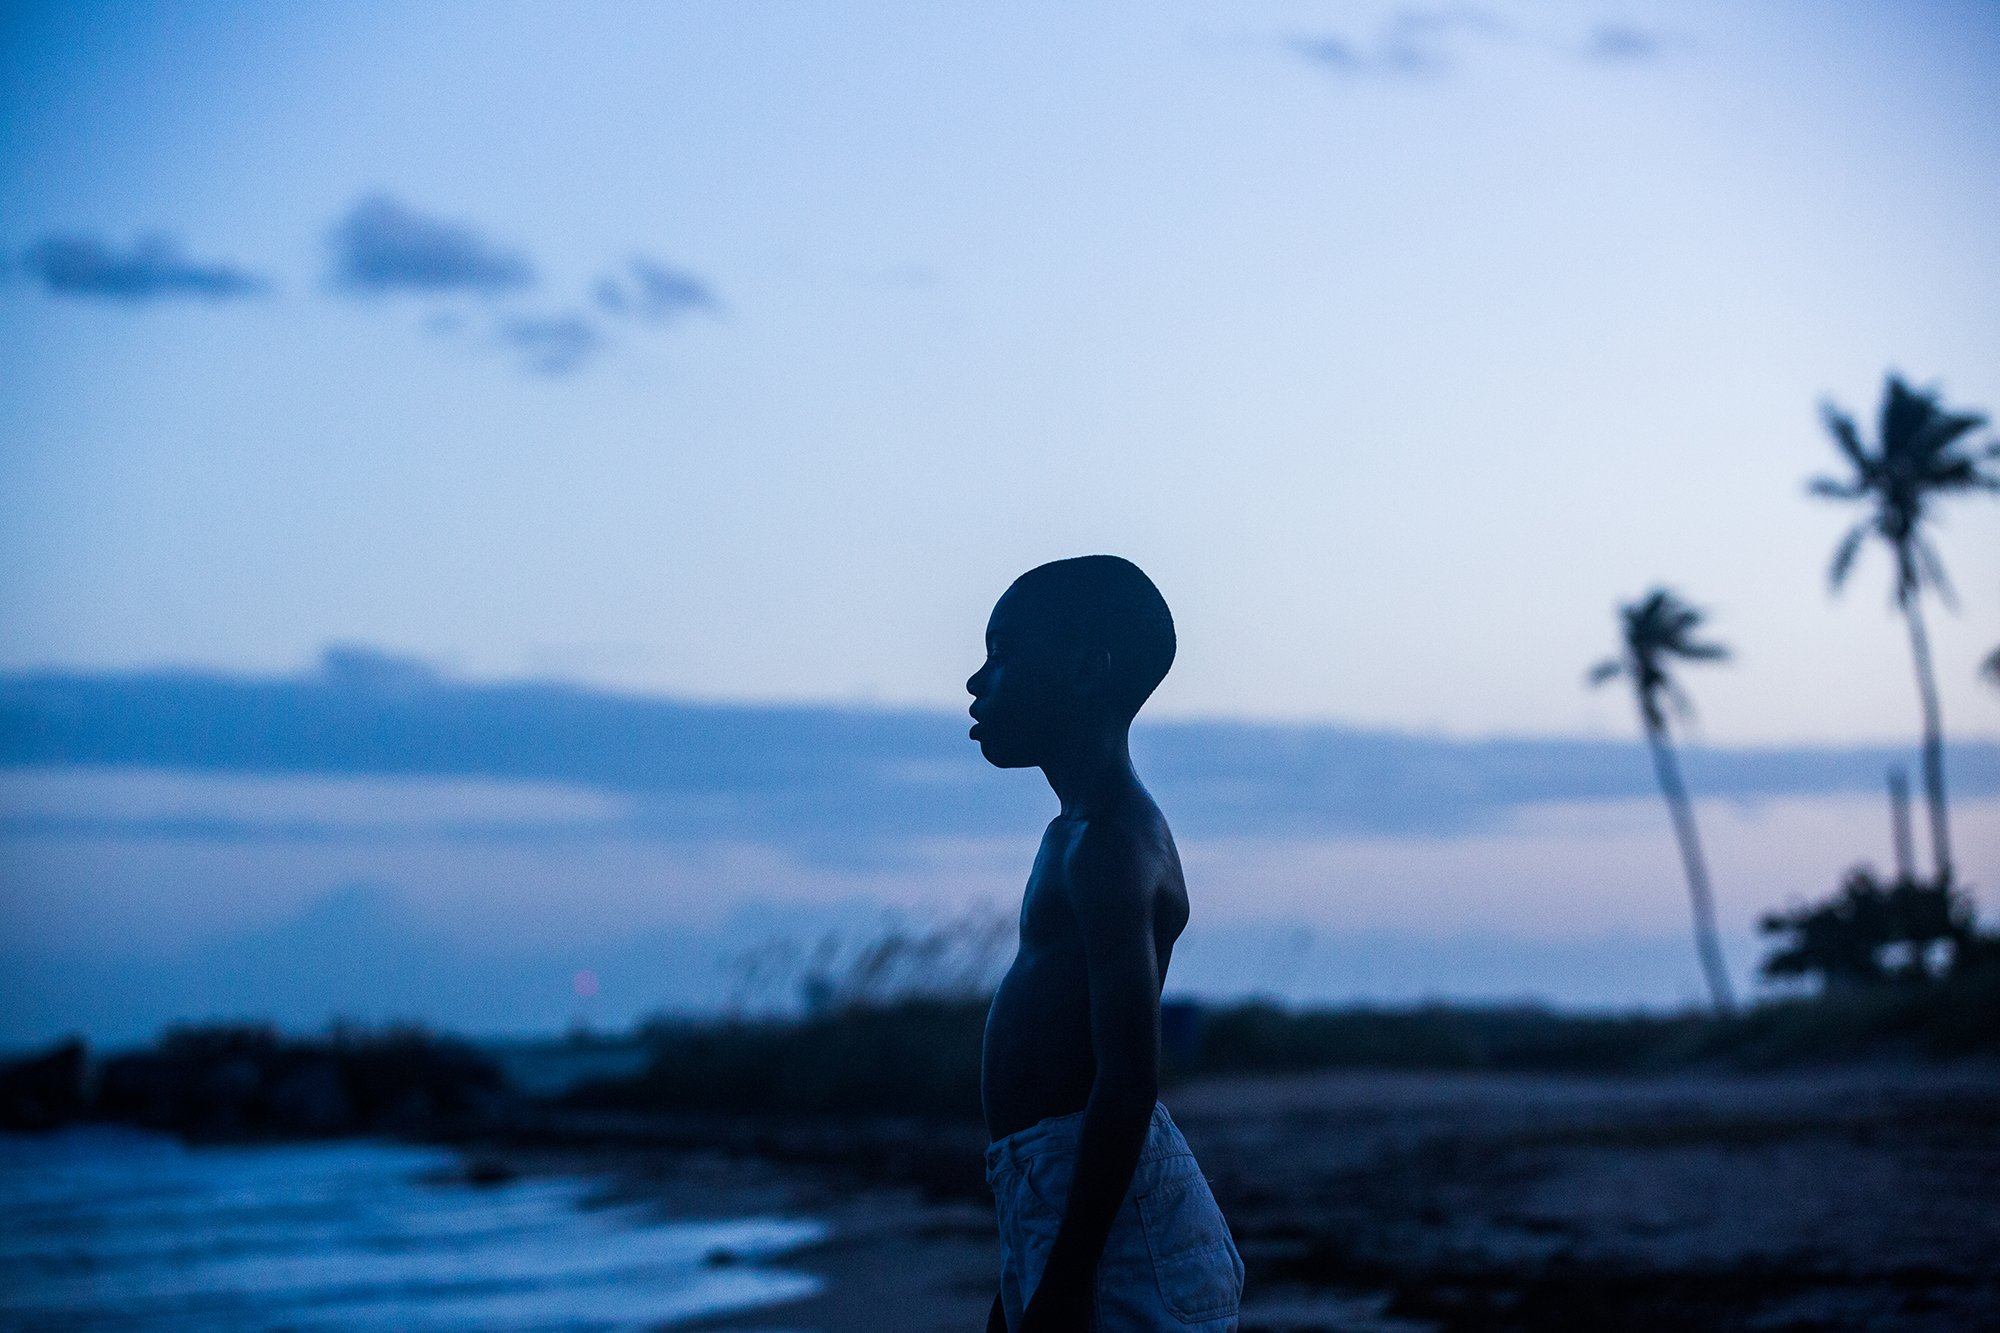 Barry Jenkins. Moonlight. 2016.